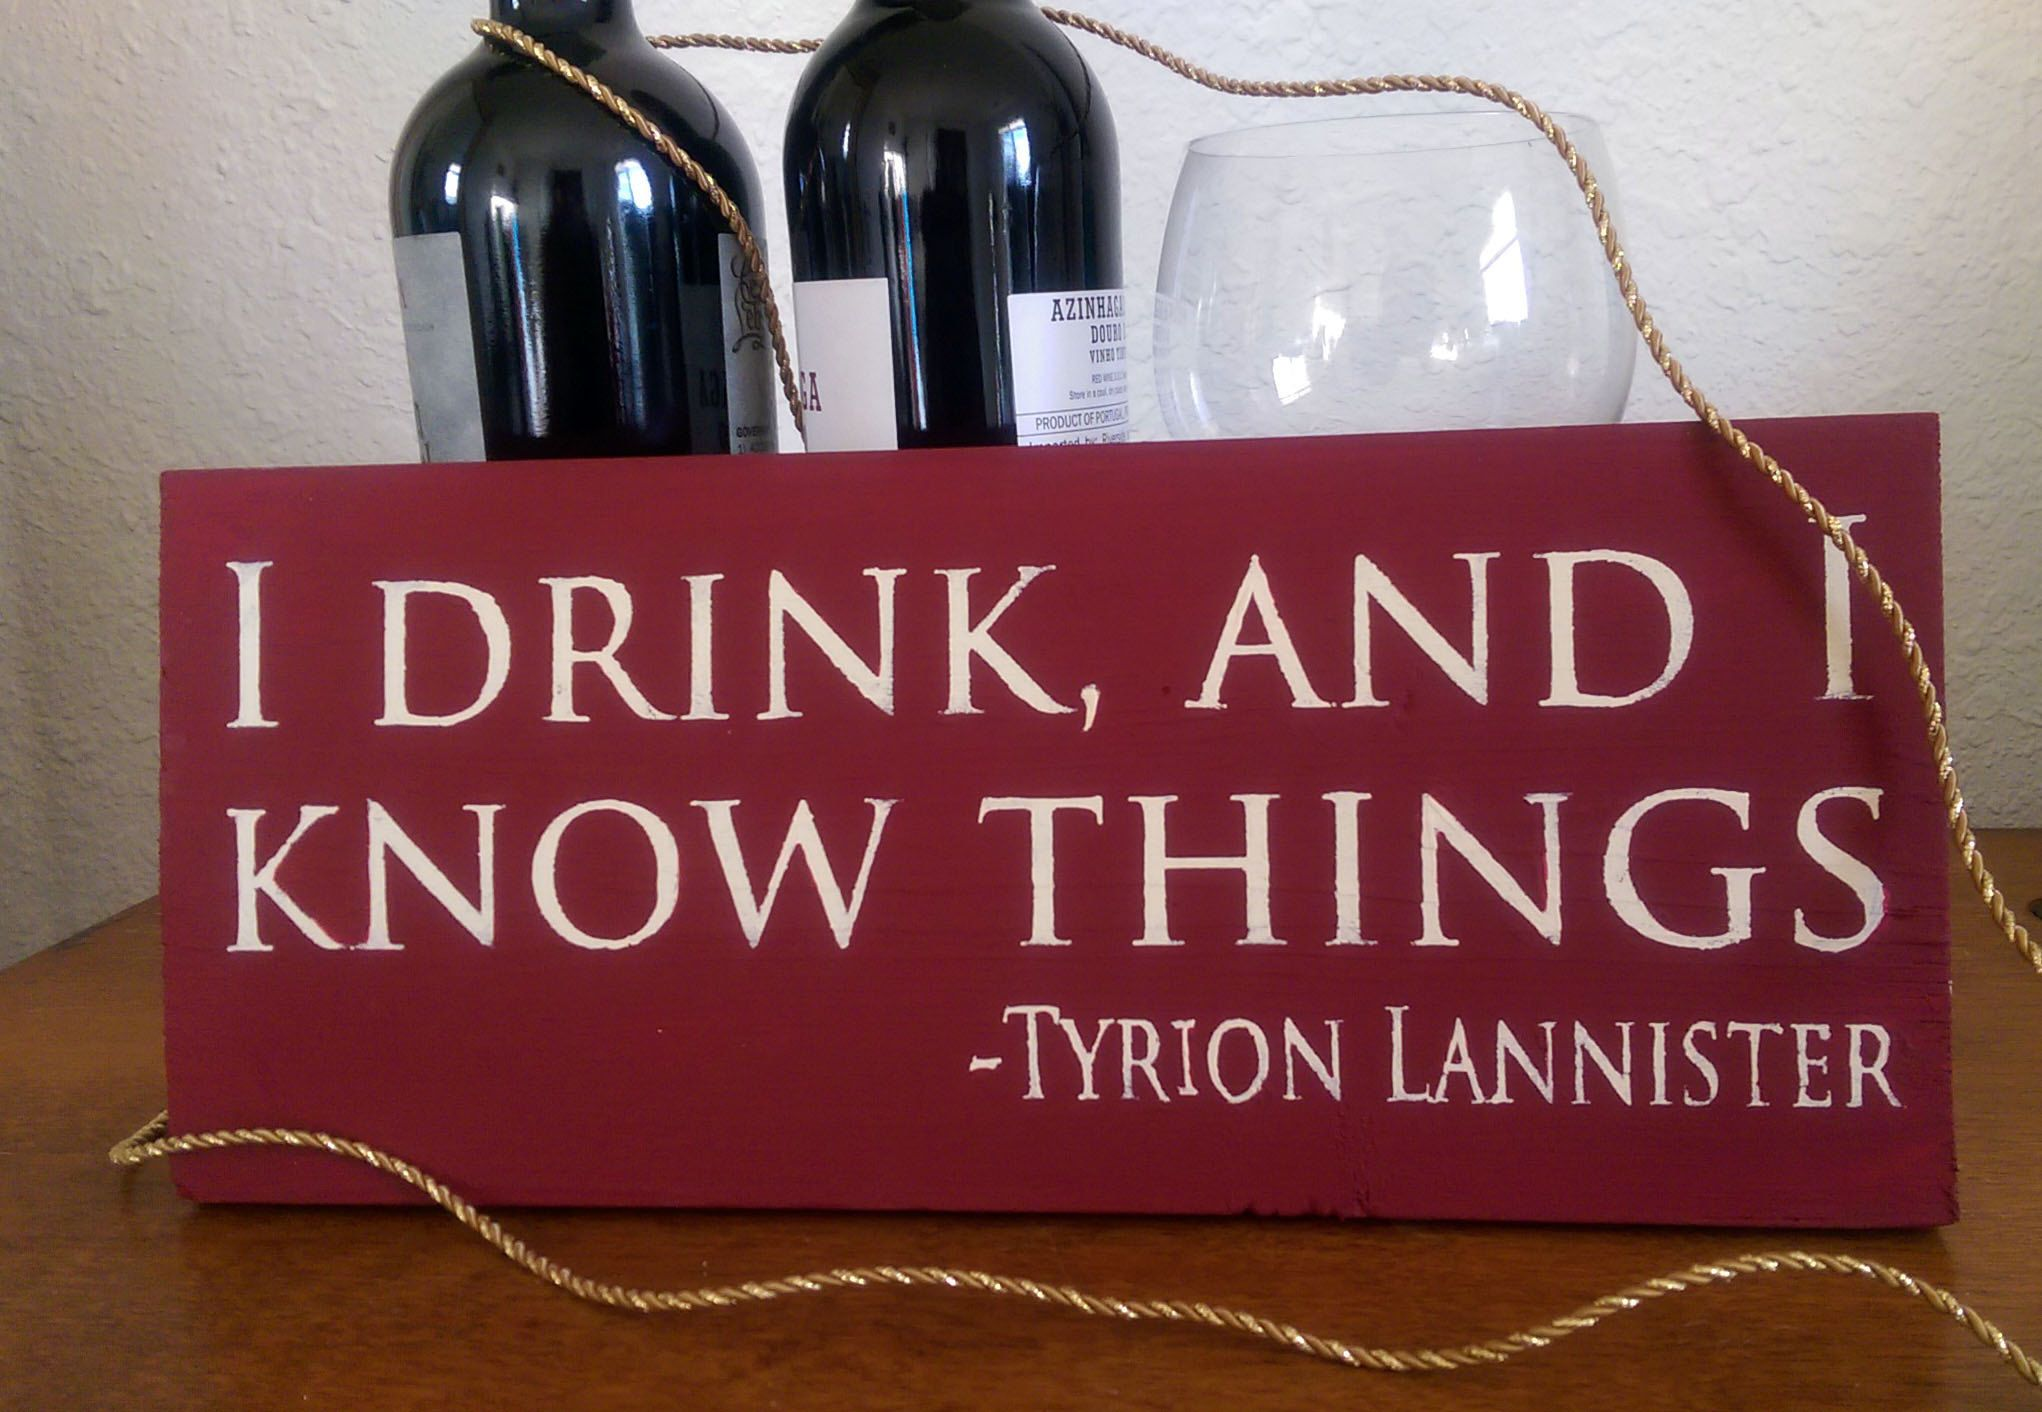 I Drink And I Know Things Perfect For Your Favorite Game Of Thrones Fan Https Www Etsy Com Listing 487325015 I D With Images Drinks Wine Bottle Game Of Thrones Fans